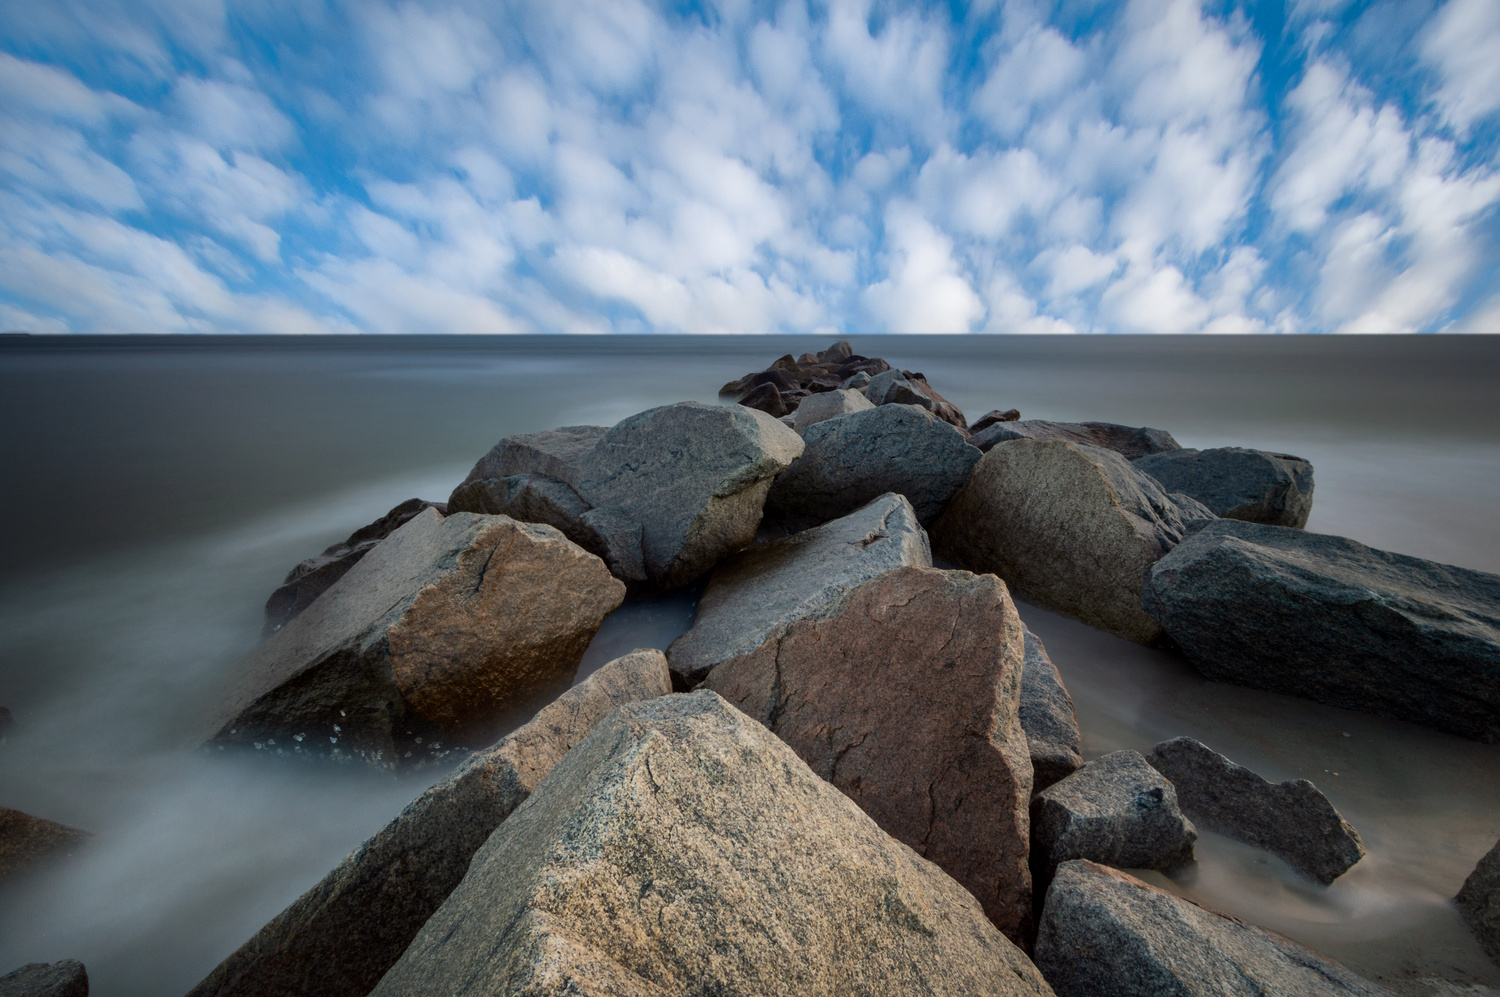 Rocks and Water Long Exposure by Kyle Foreman